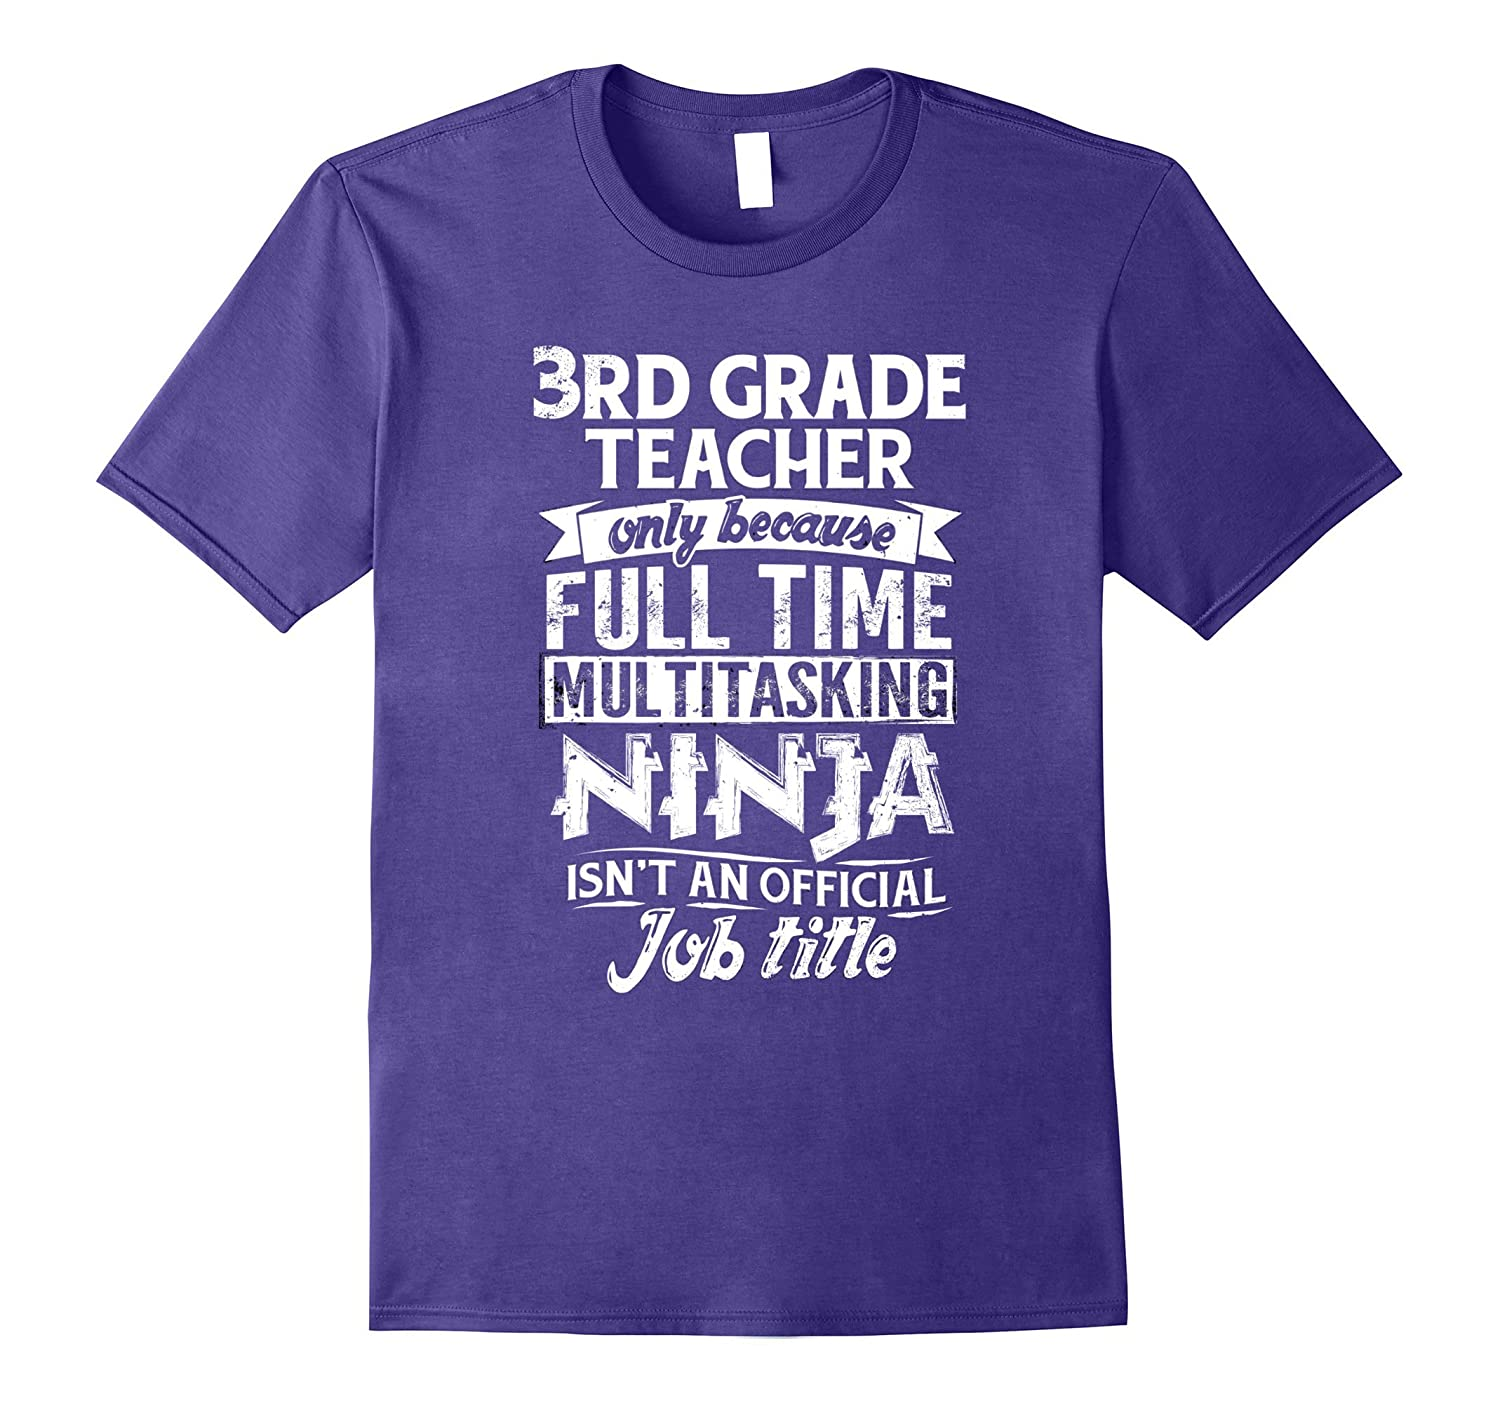 3rd Grade Teacher Not An Actual Job Title Funny T-Shirt-TJ